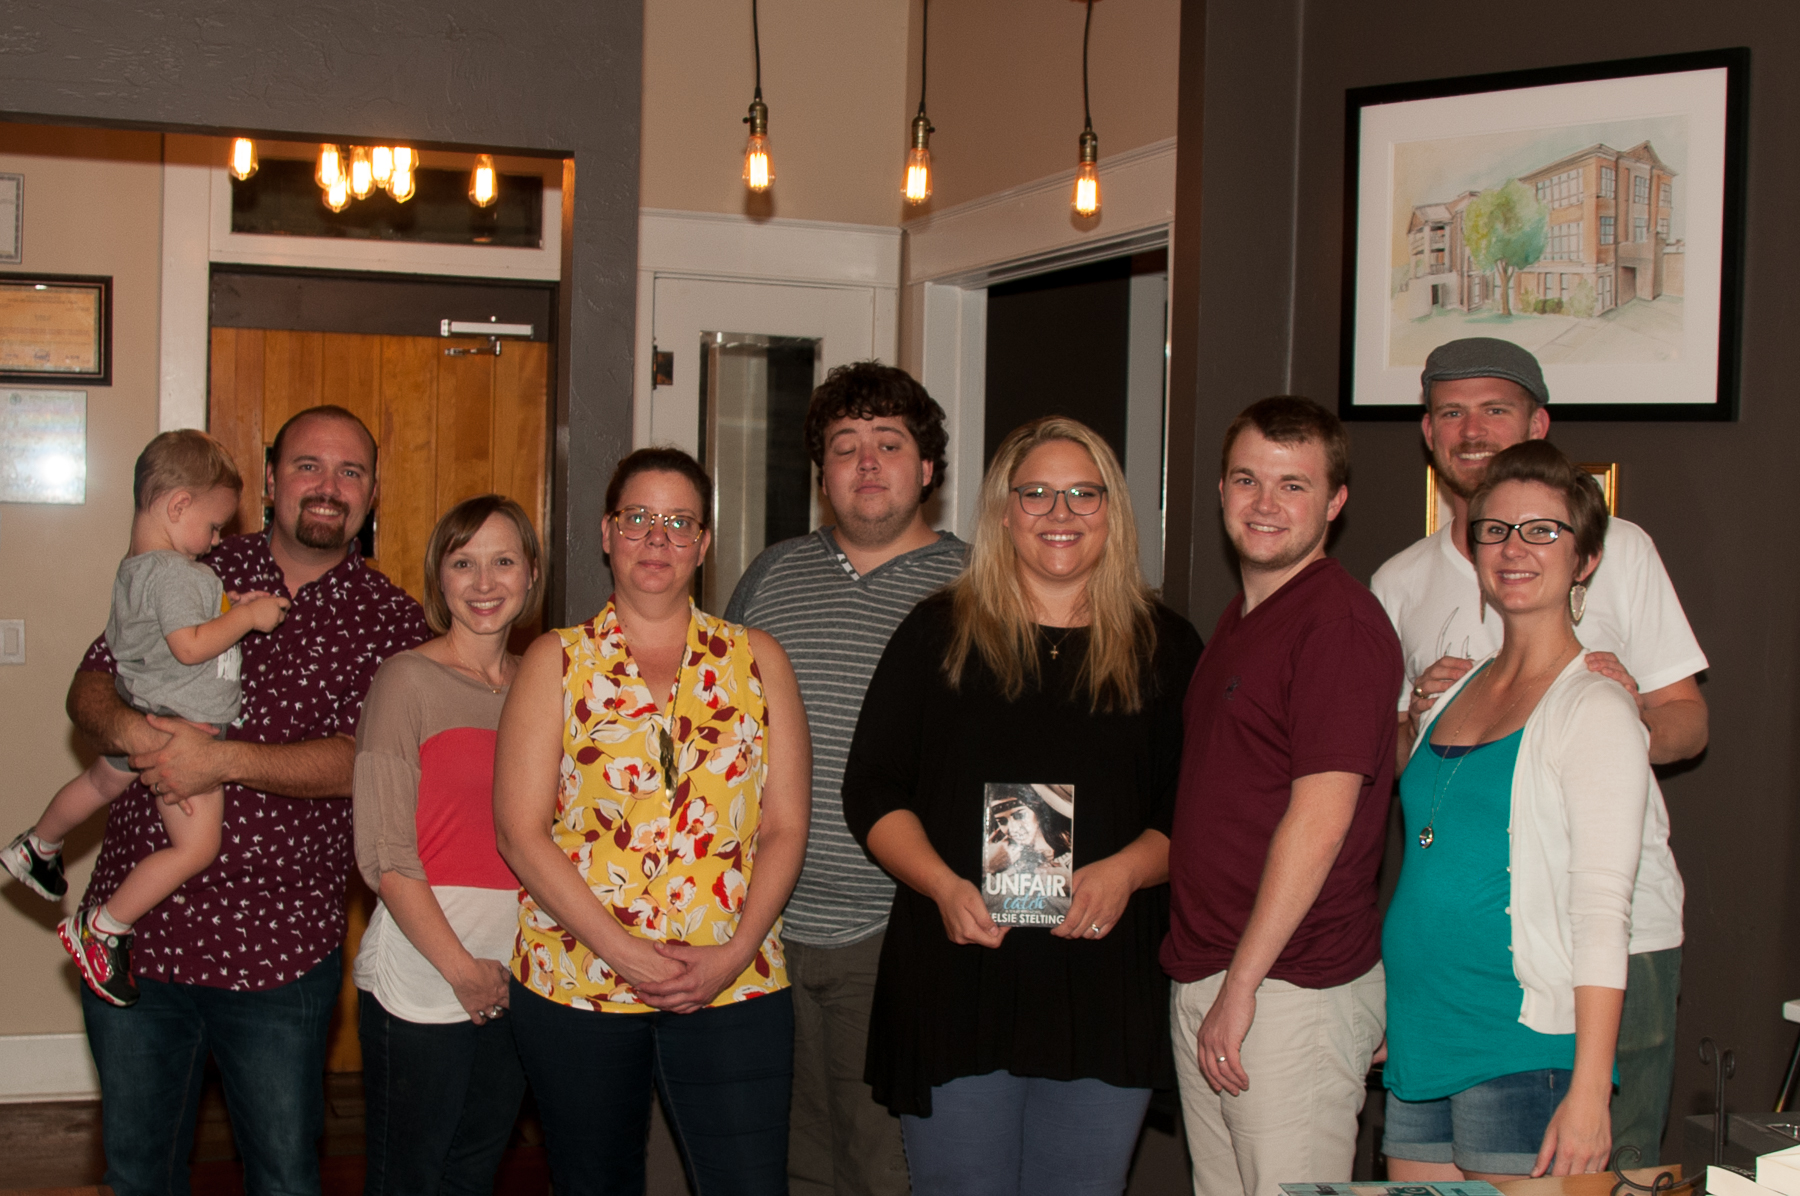 The writing gang, minus Danny. (Left to right) Malachi, Johnny, and April walker, Tucker, me, Ty, Garrett, and Shayli (plus Rhett, who's going to make an appearance here in a few months!)